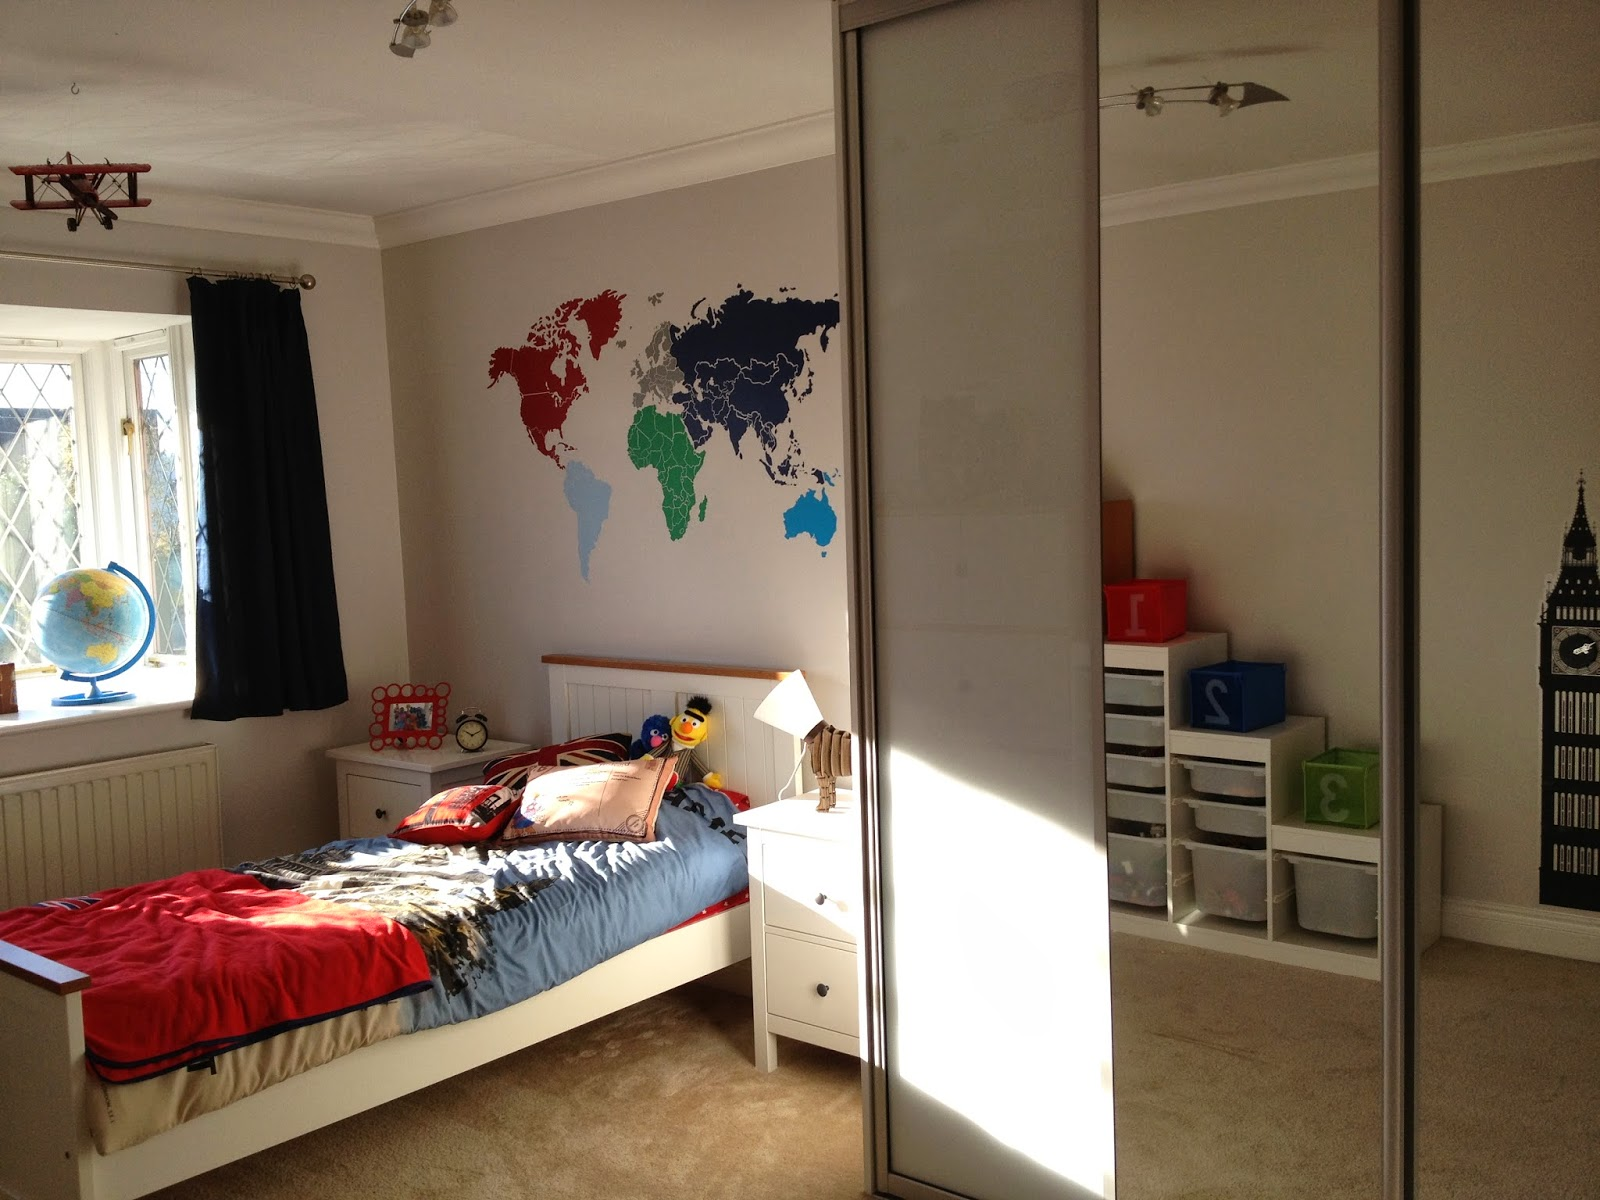 Home is where the tart is harrys travel themed boys bedroom for World themed bedding